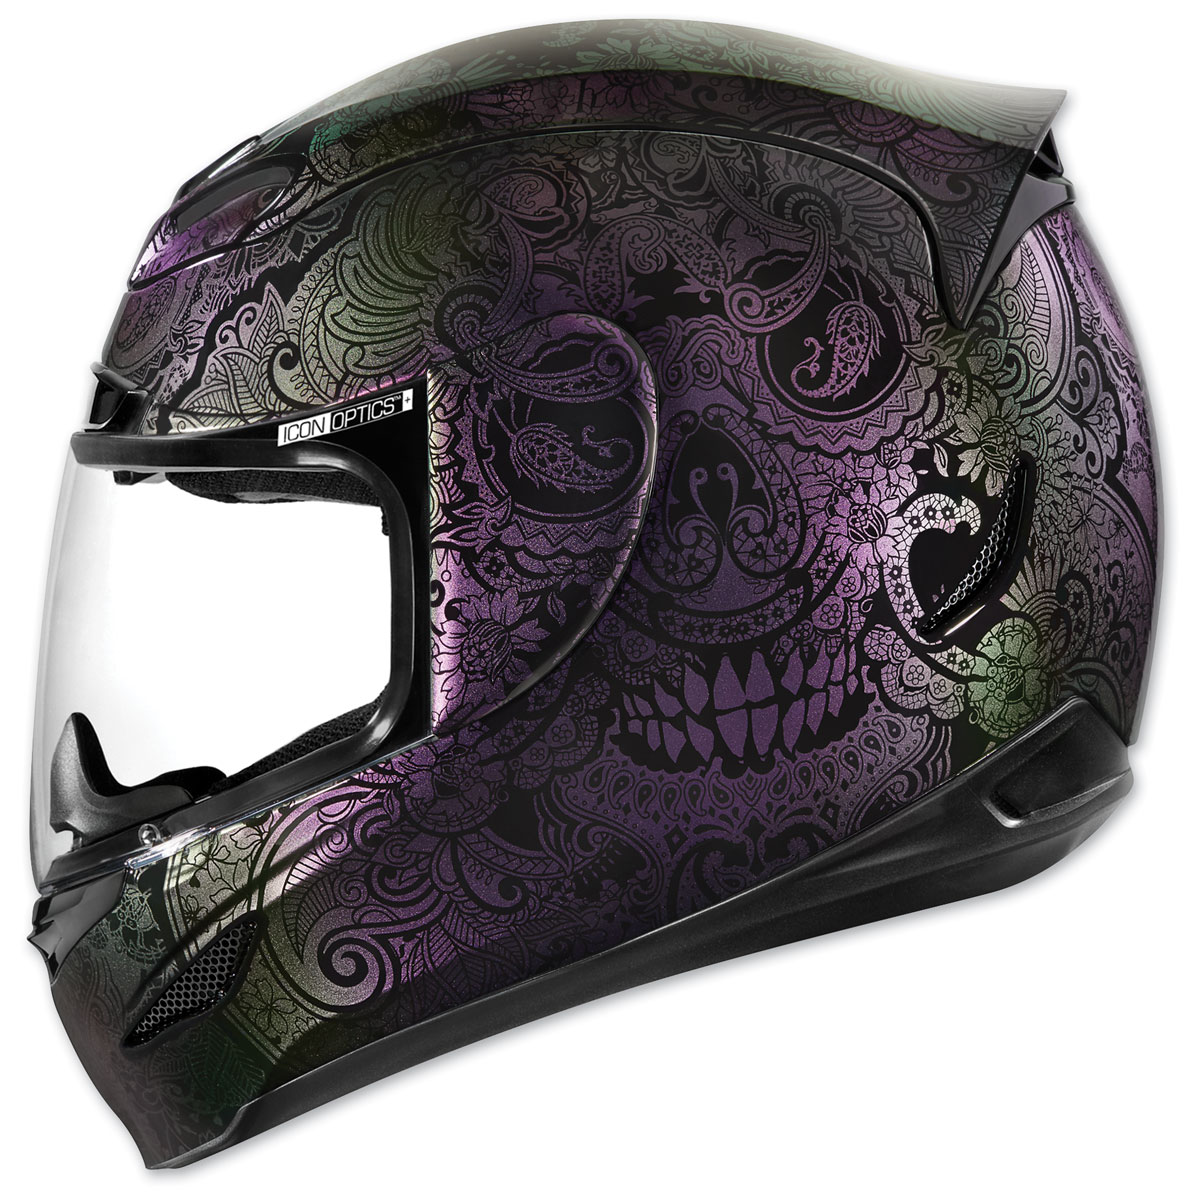 358a9494c18 ICON Airmada Chantilly Opal Full Face Helmet - 0101-10768